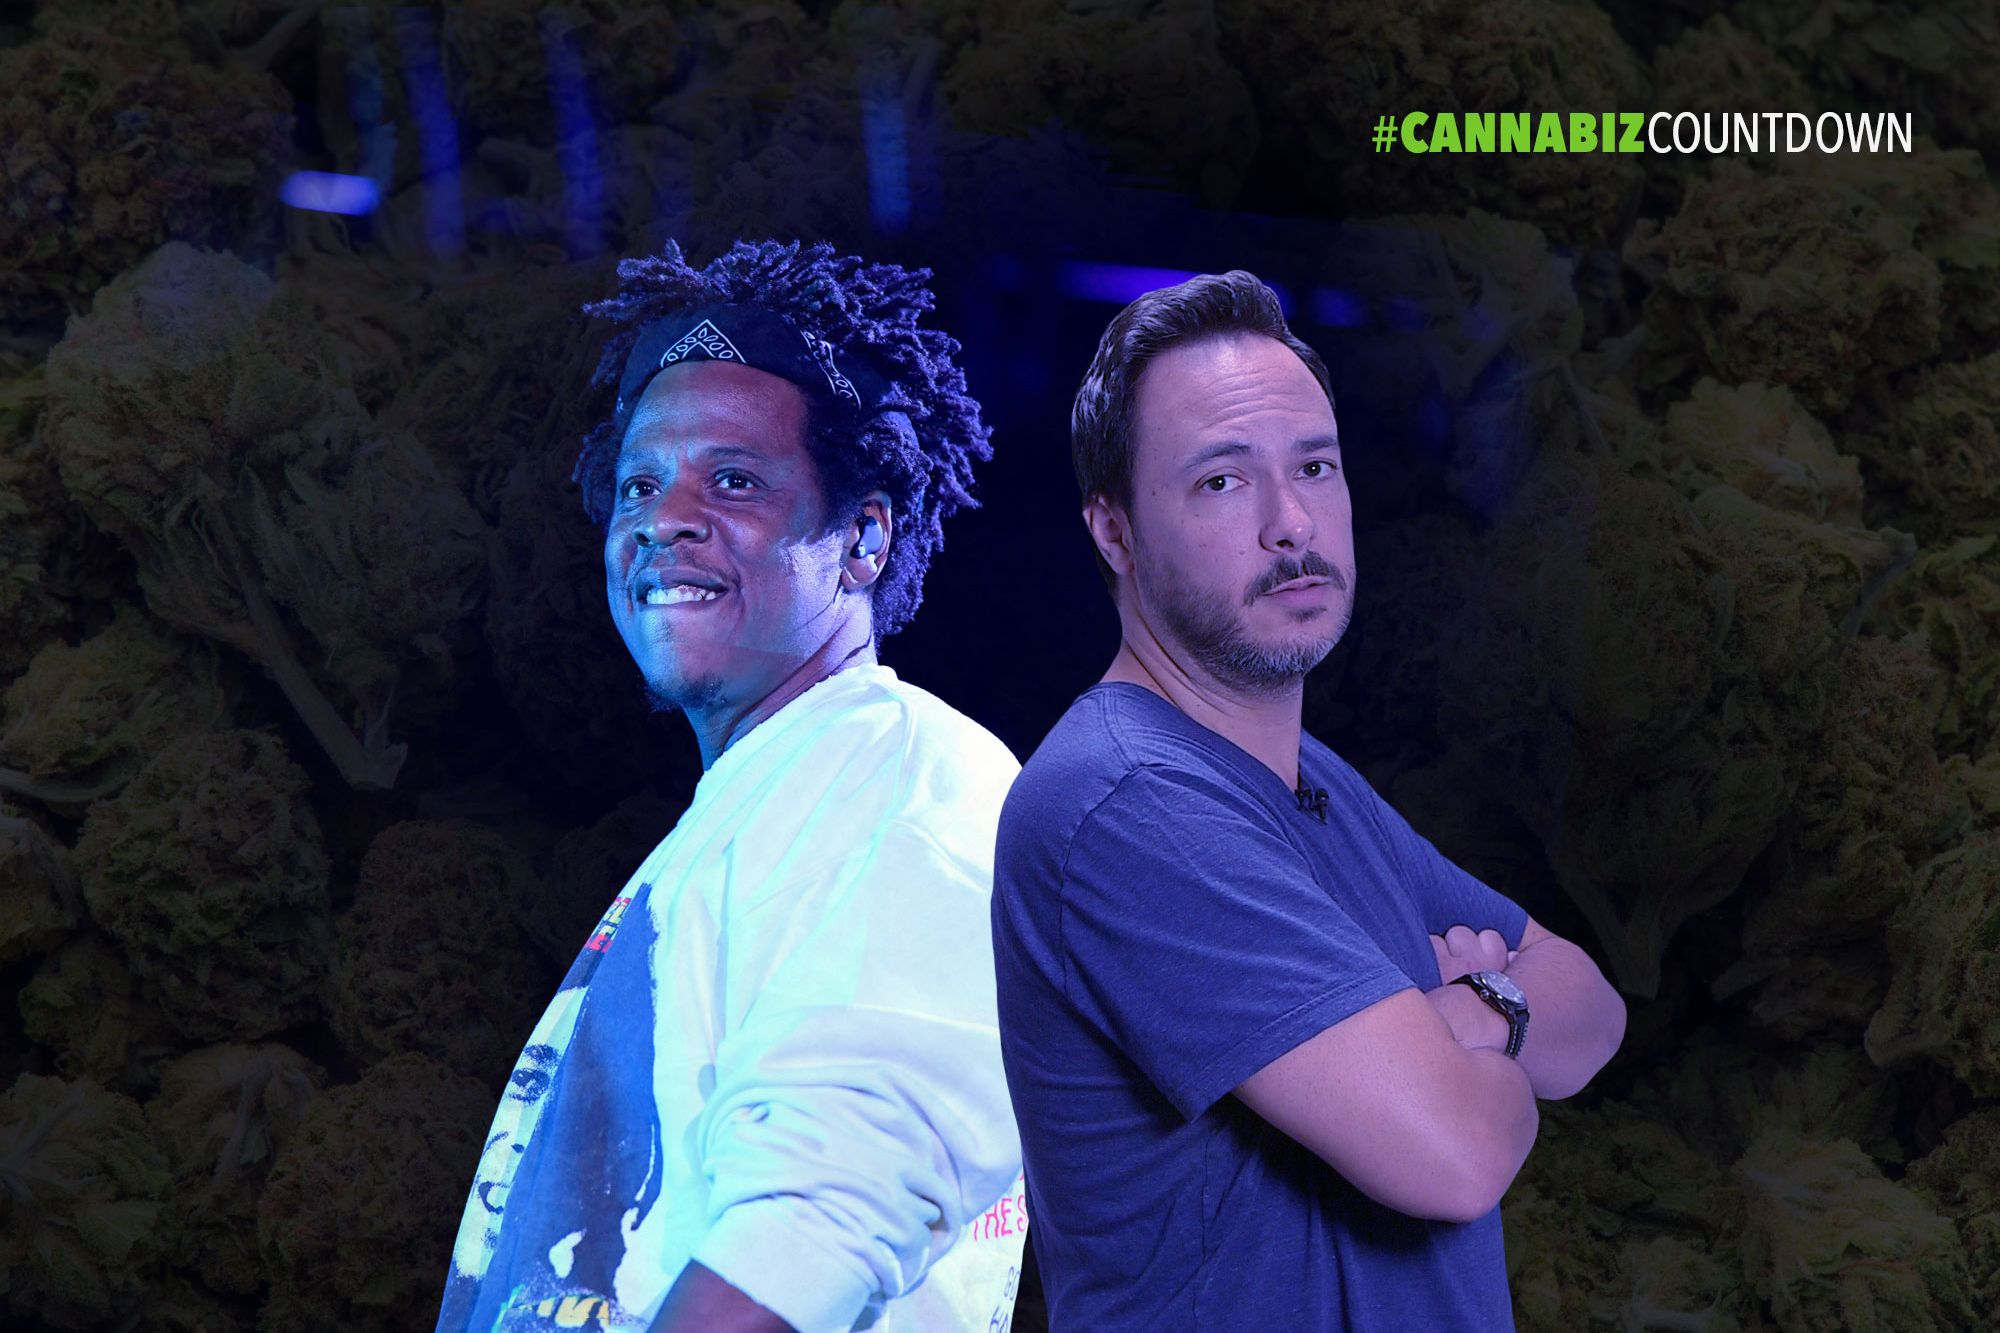 Cannabiz Countdown: Jay-Z Gets Into the Pot Game (60-Second Video)